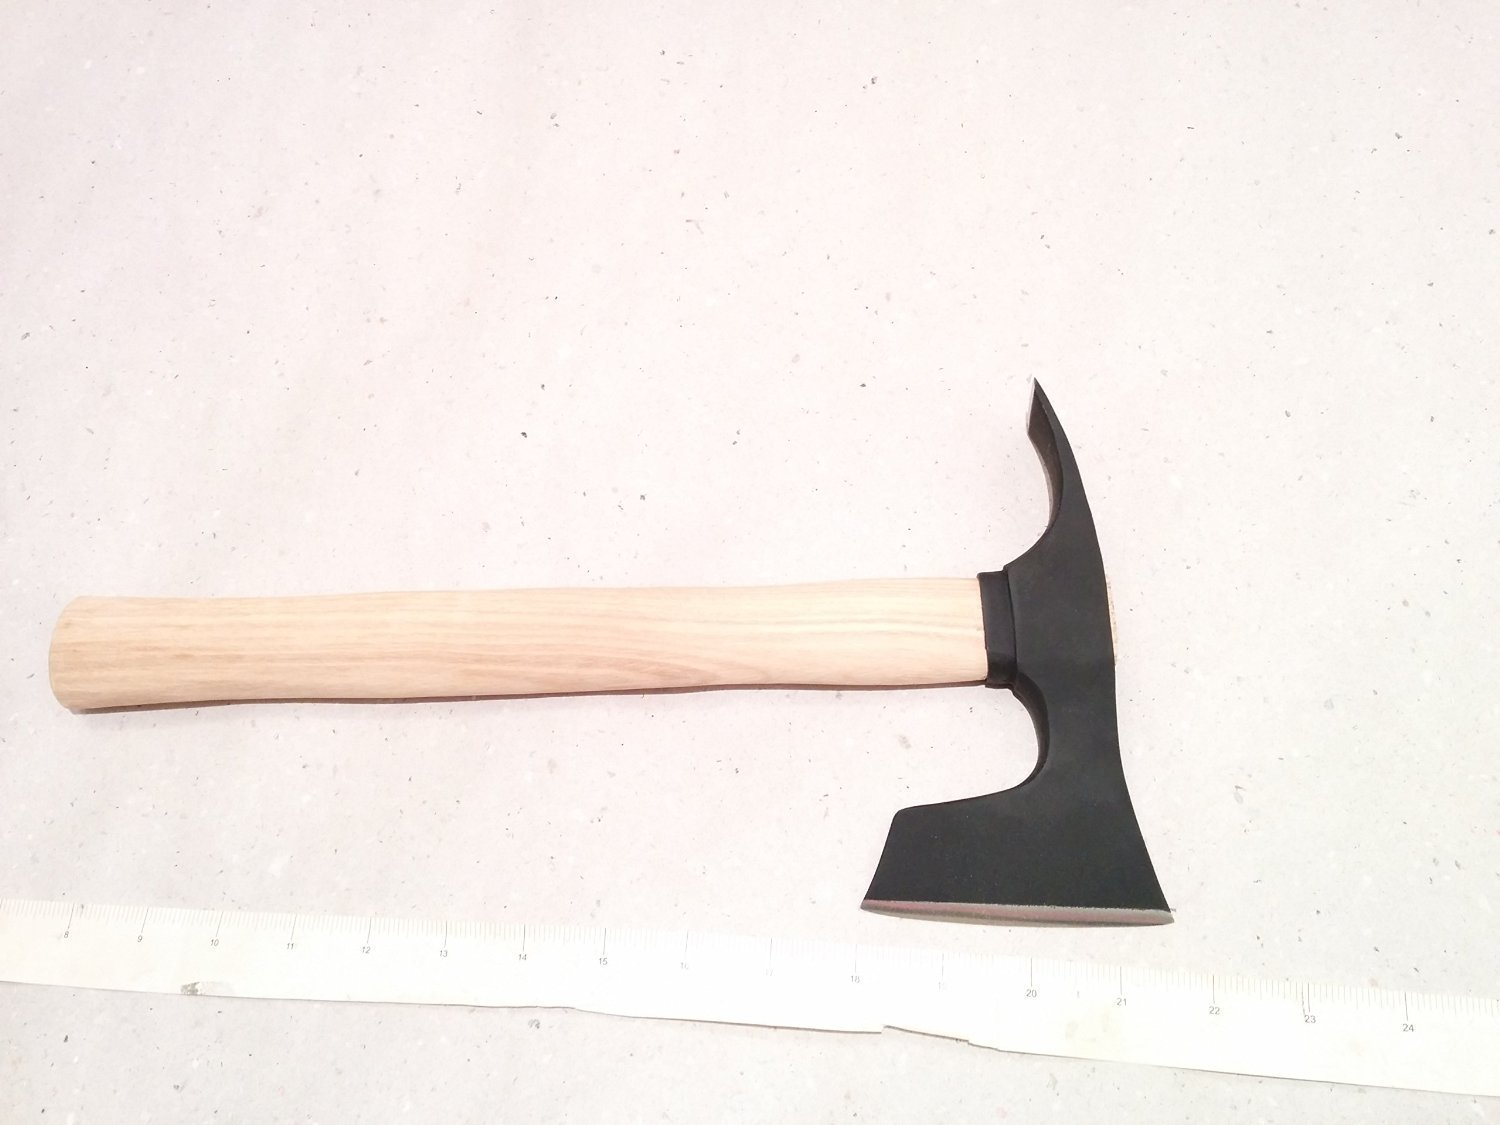 � CAMPING BEARDED HATCHET - AXE COMBINED WITH ADZE BLADE BUSHCRAFT TOOL